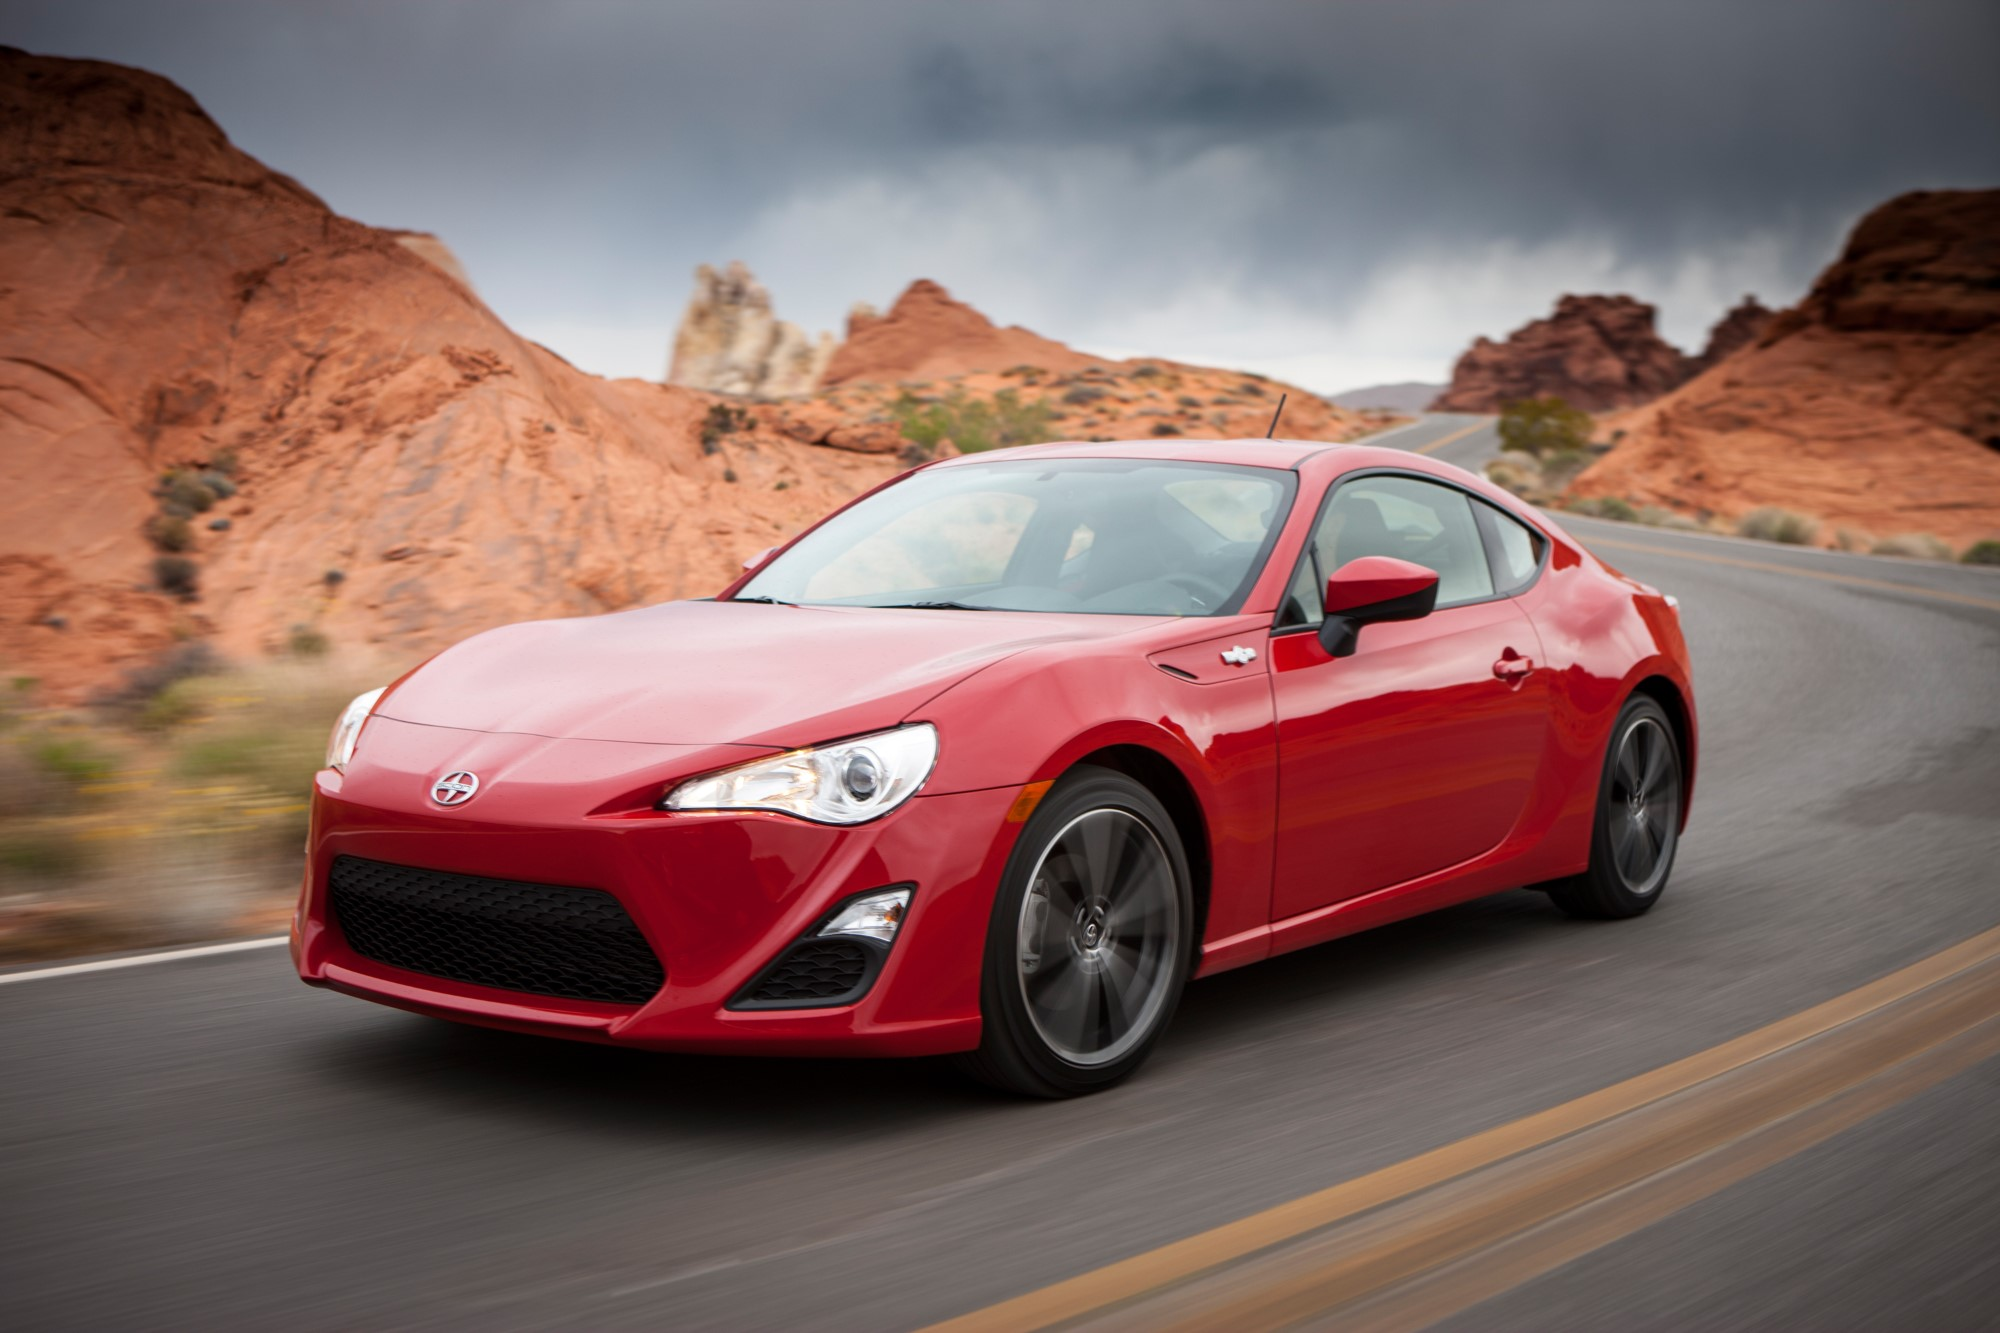 Land Rover Indianapolis >> 2014 Scion FR-S Review, Ratings, Specs, Prices, and Photos ...